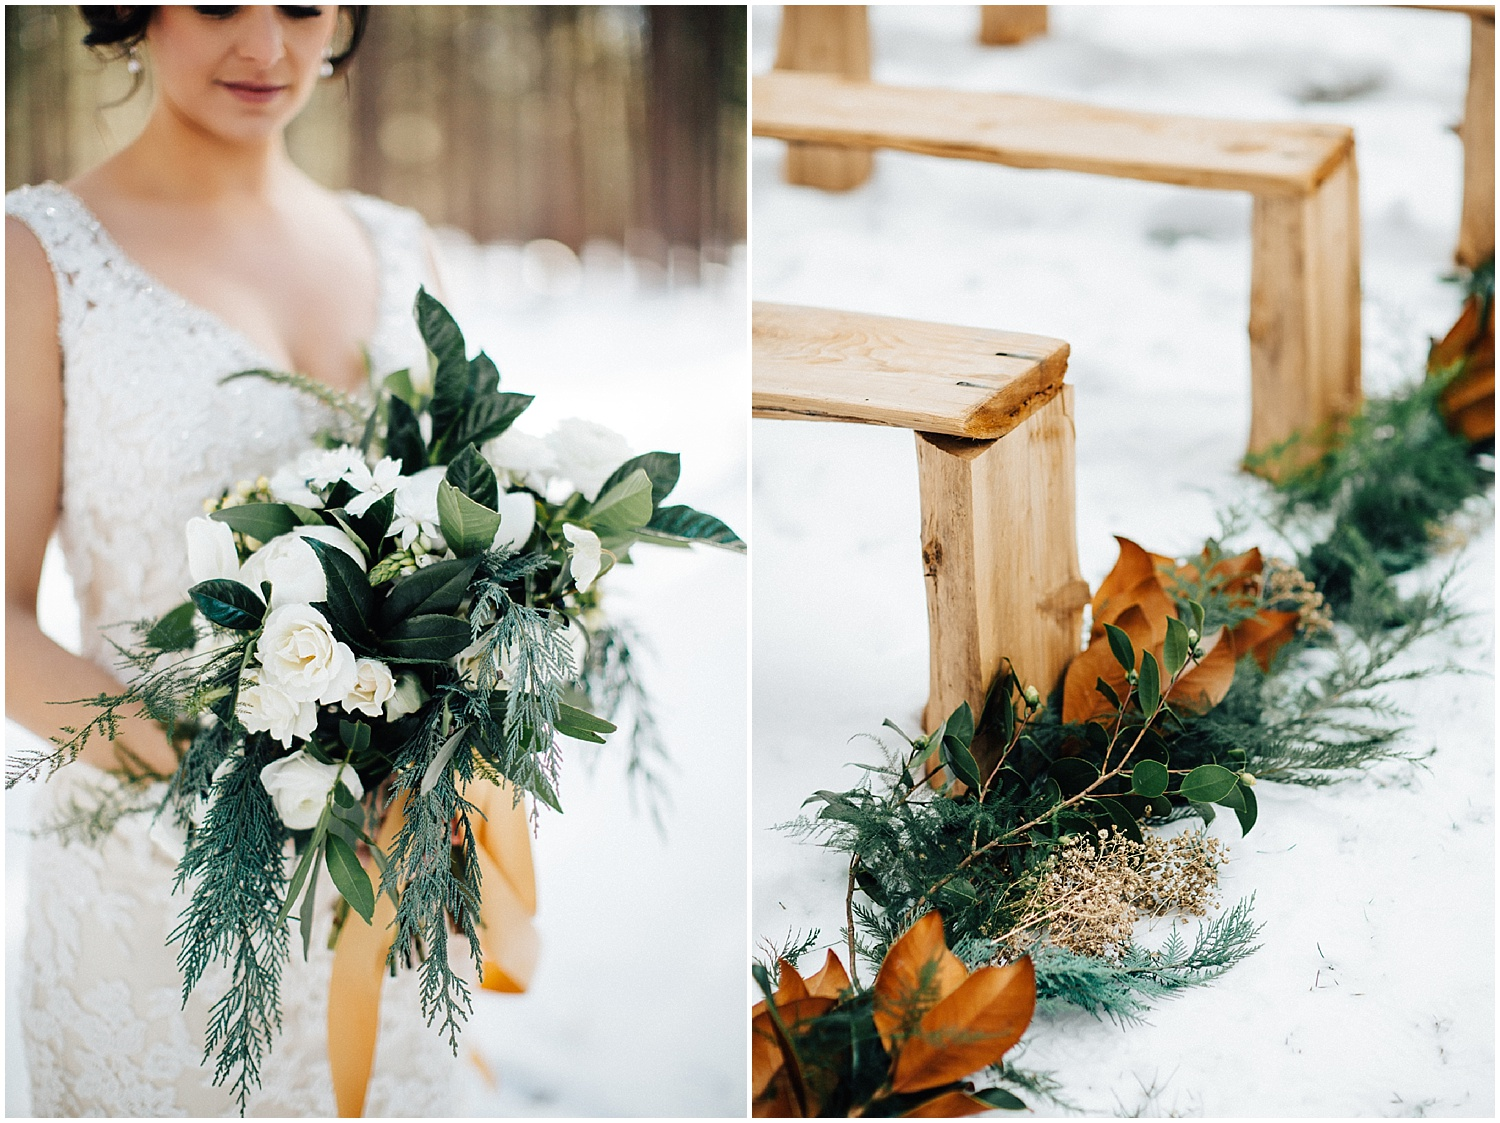 Good Seed Floral Design wedding bouquet